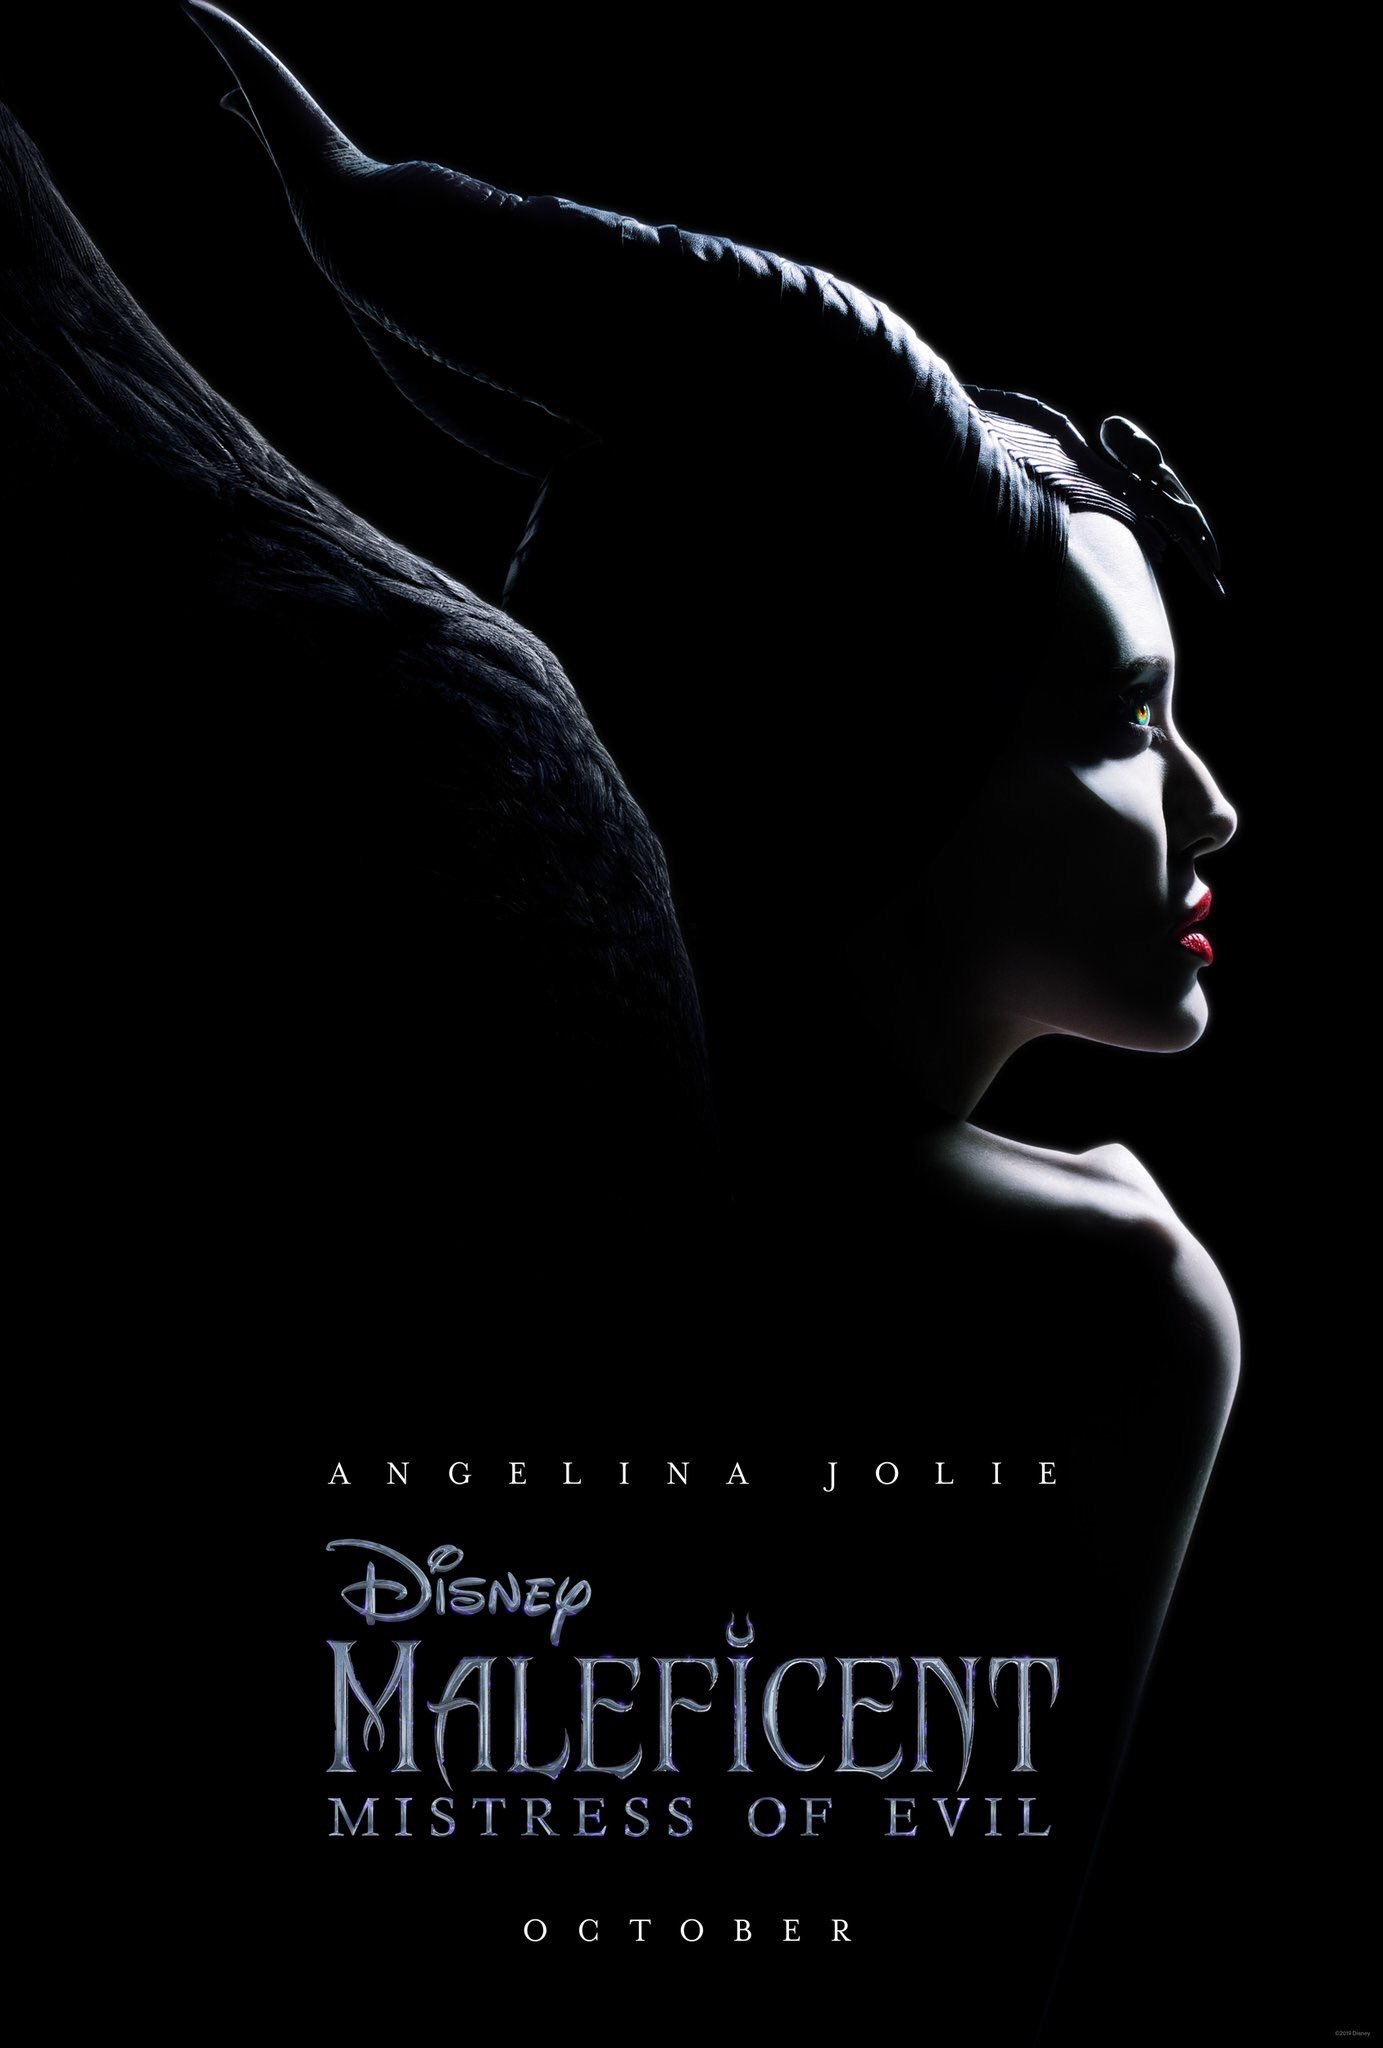 Disney S Maleficent Mistress Of Evil Gets A Poster And A